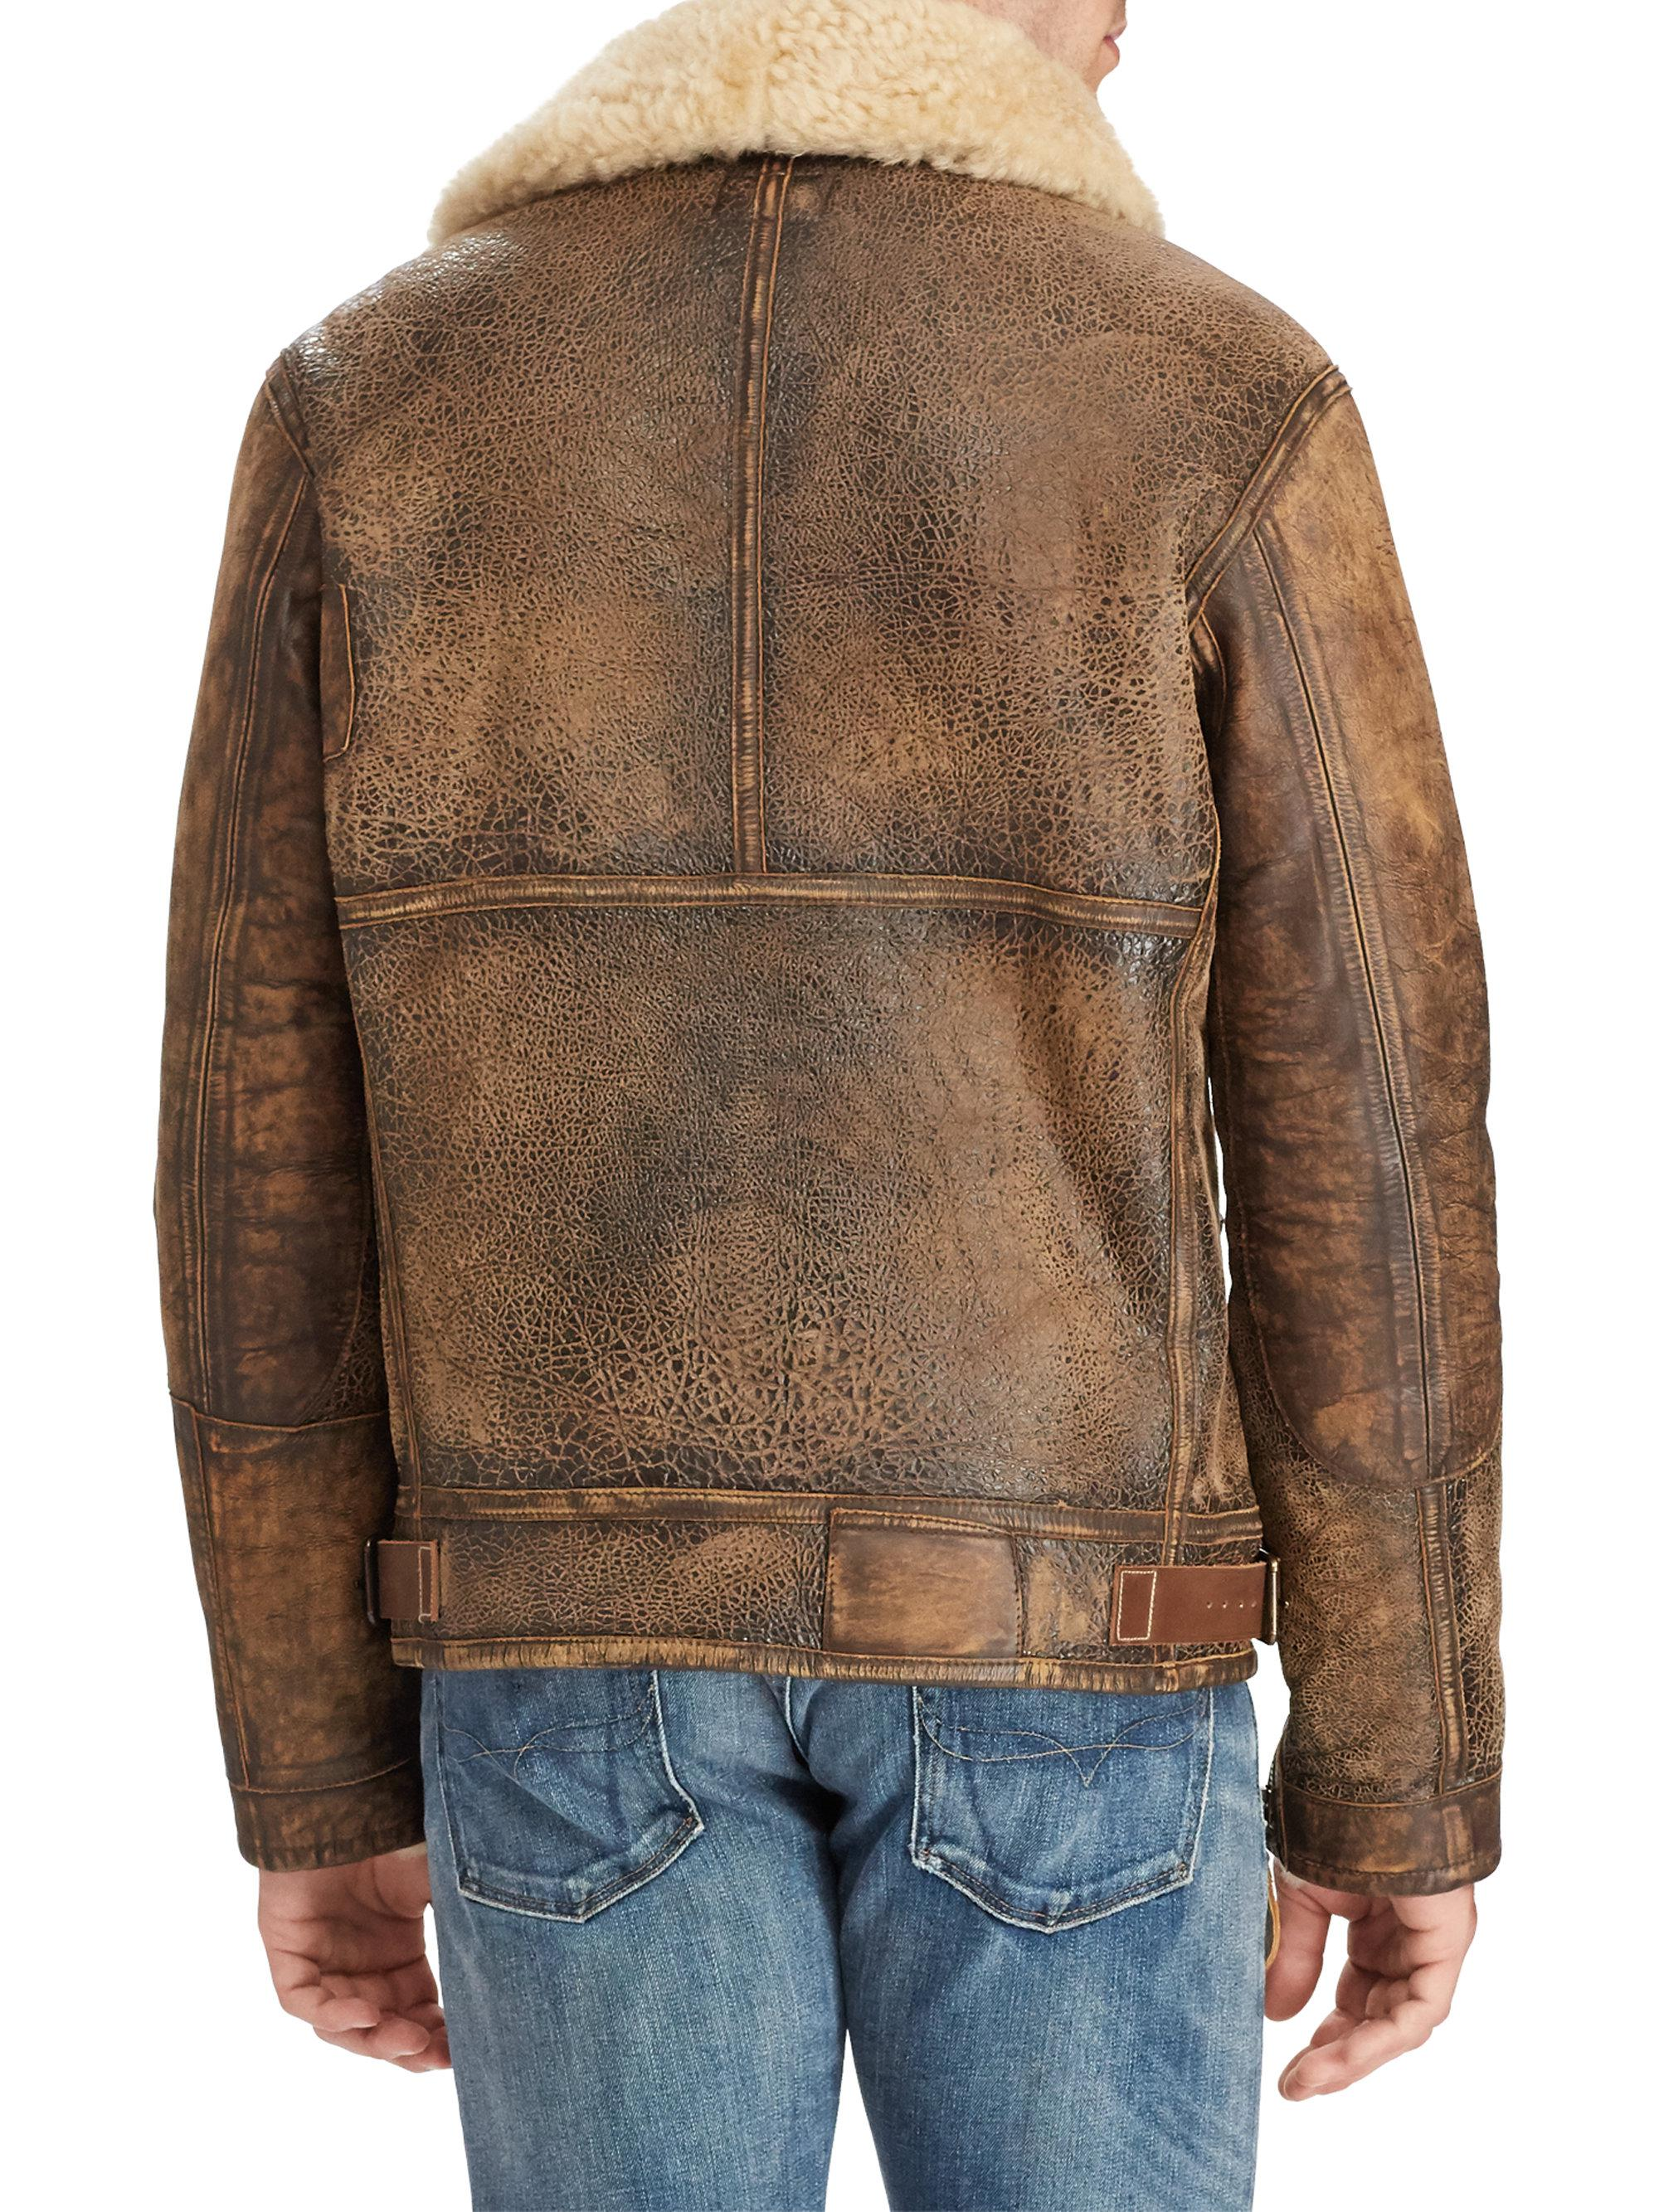 Lyst - Polo Ralph Lauren Shearling-trimmed Leather Bomber Jacket in ... 8a5859504c8cf